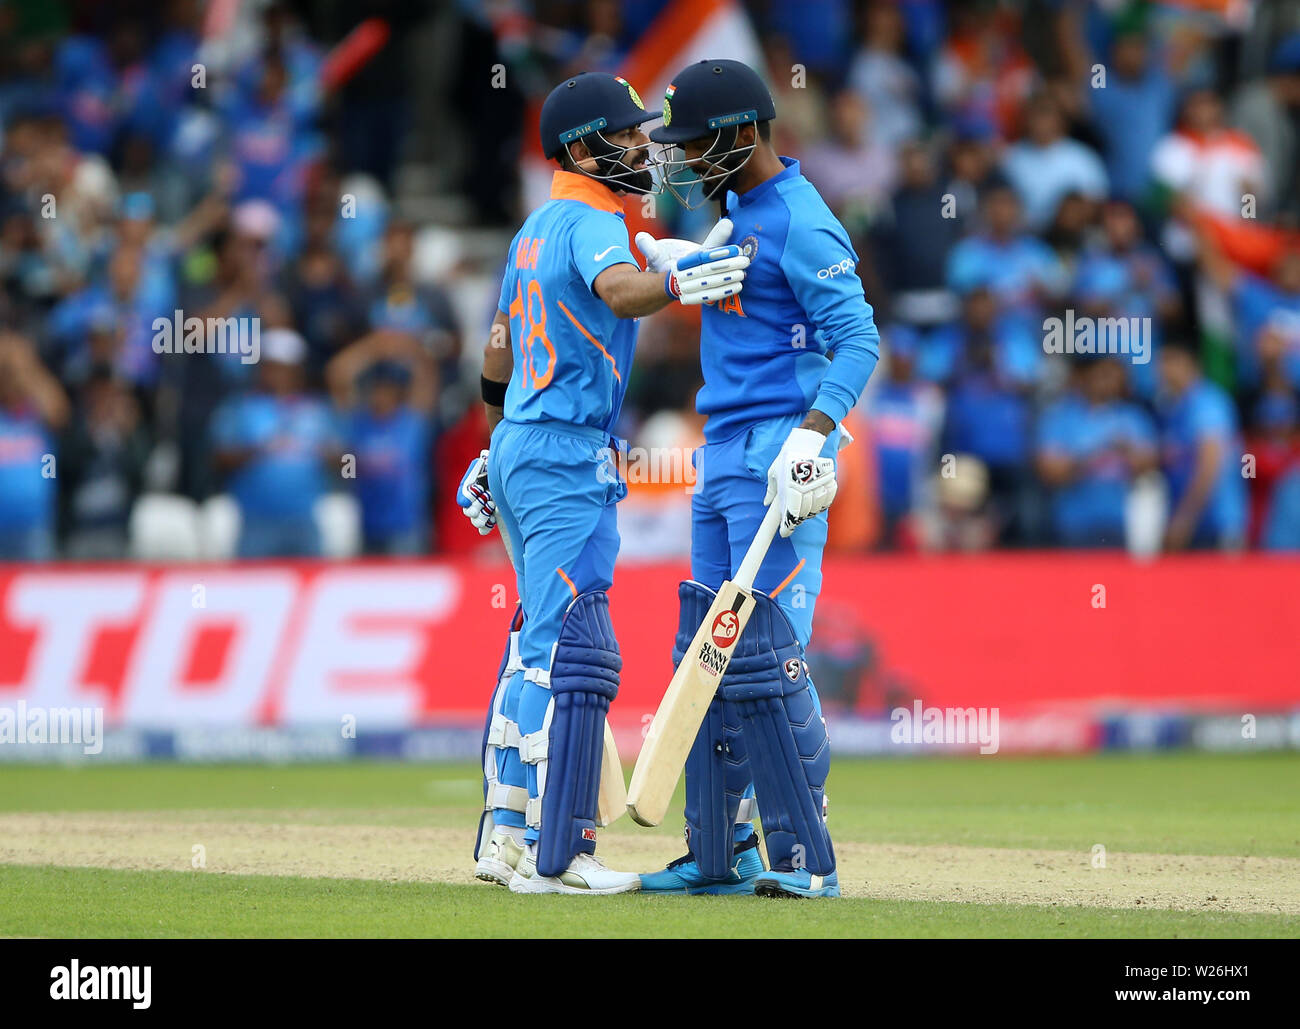 India's KL Rahul celebrates his century with Virat Kohli during the ICC Cricket World Cup group stage match at Headingley, Leeds. - Stock Image